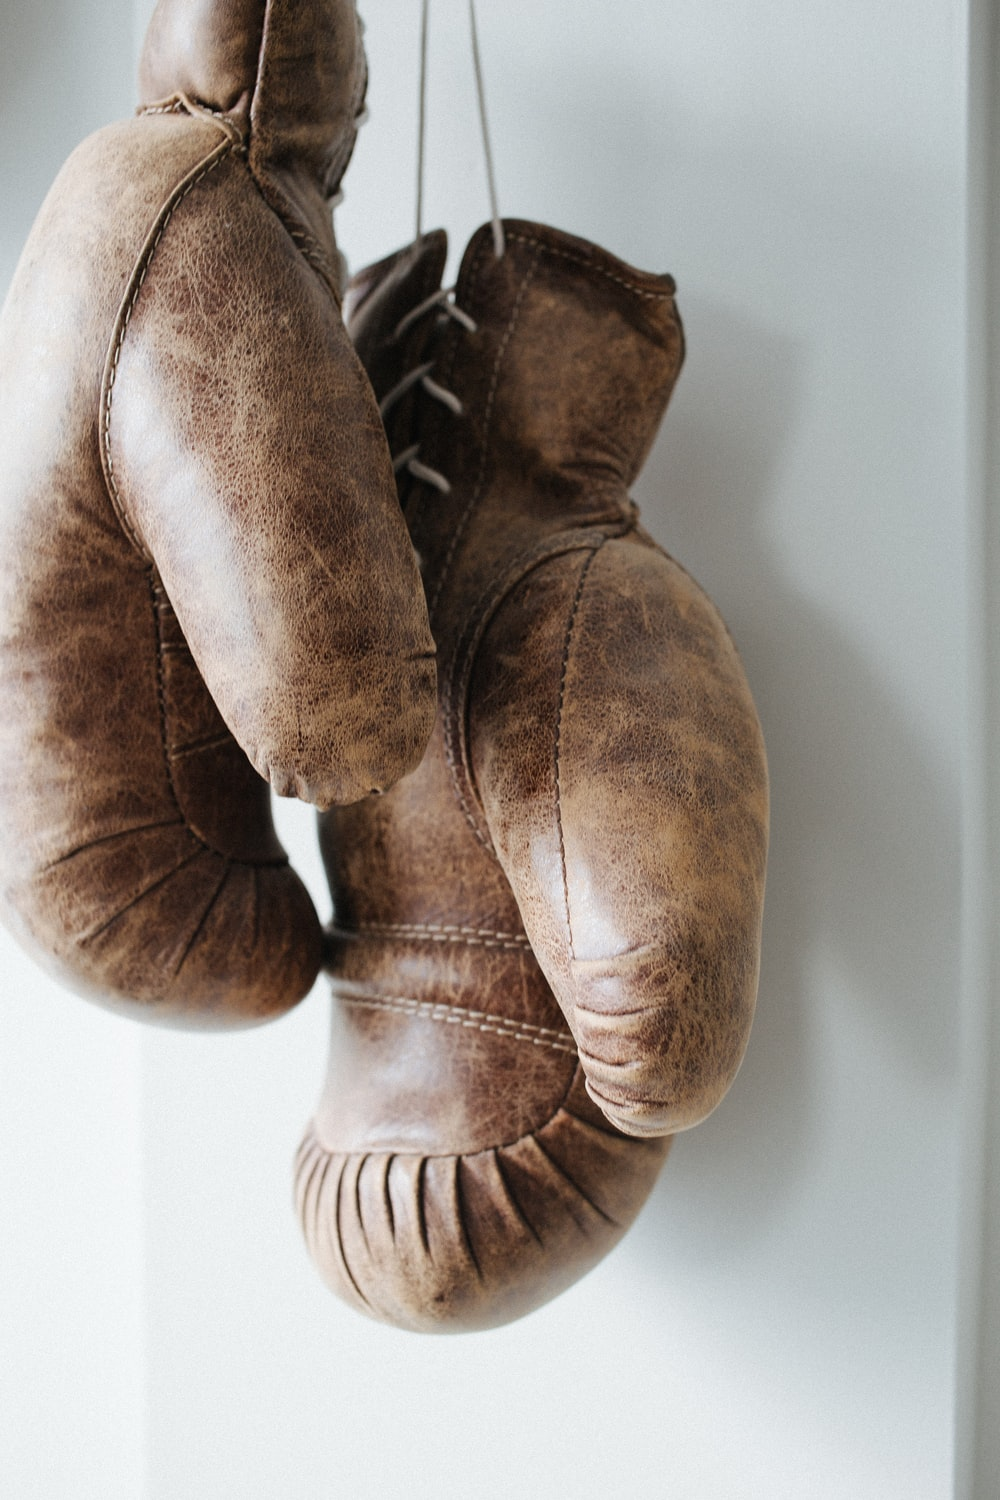 pair of brown leather boxing gloves